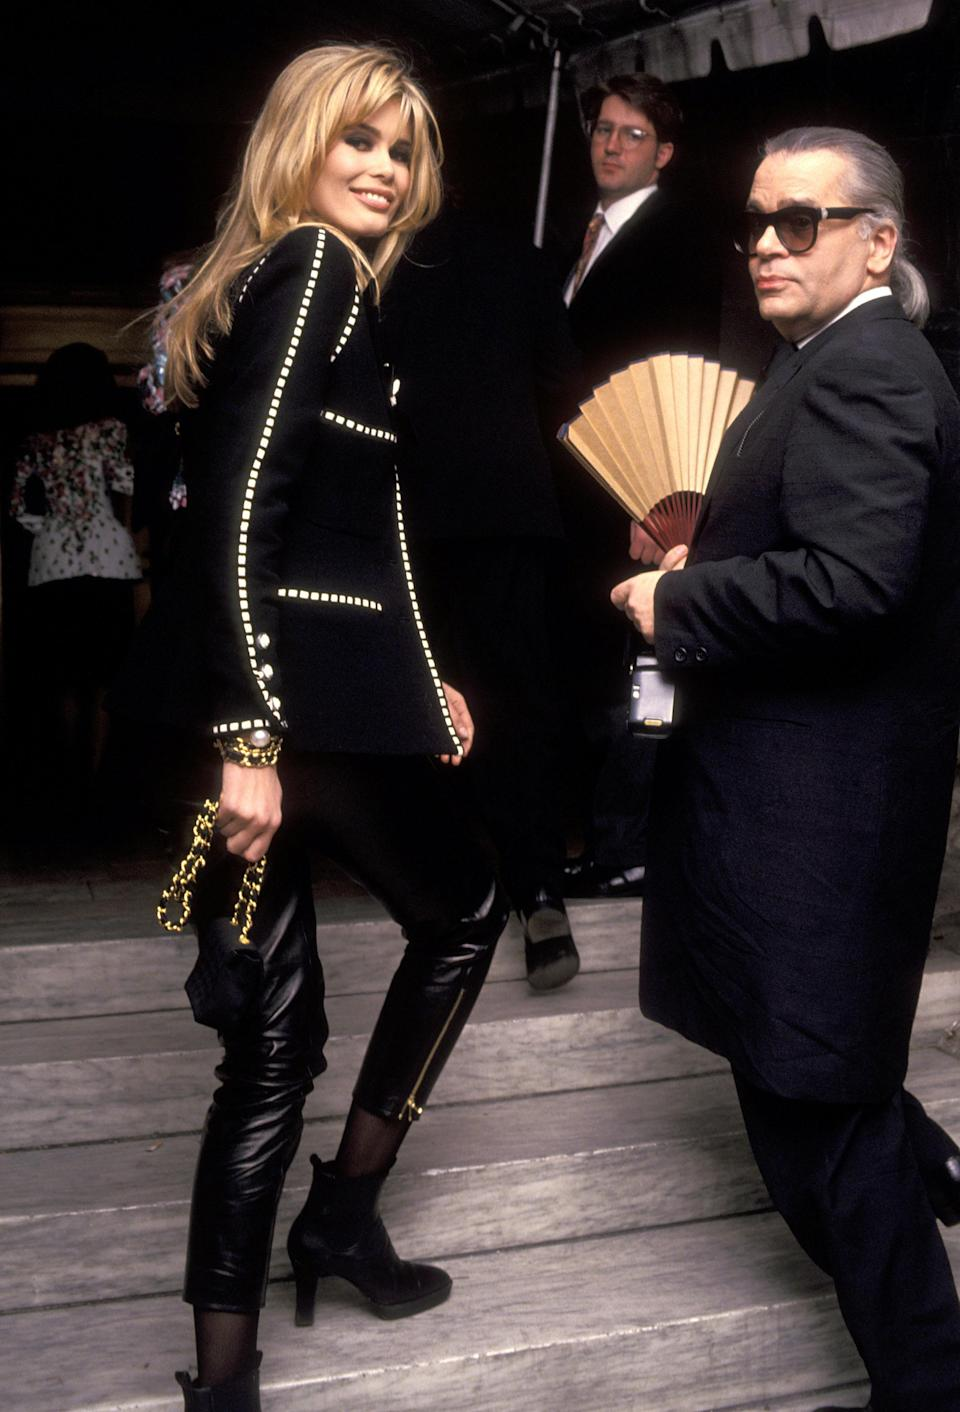 <p>Here, Karl Lagerfeld is pictured with model Claudia Schiffer at the Vogue magazine 100th anniversary party. In the same year, he was took the helm at Chloé before being replaced by Stella McCartney seven years later. <em>[Photo: Getty]</em> </p>